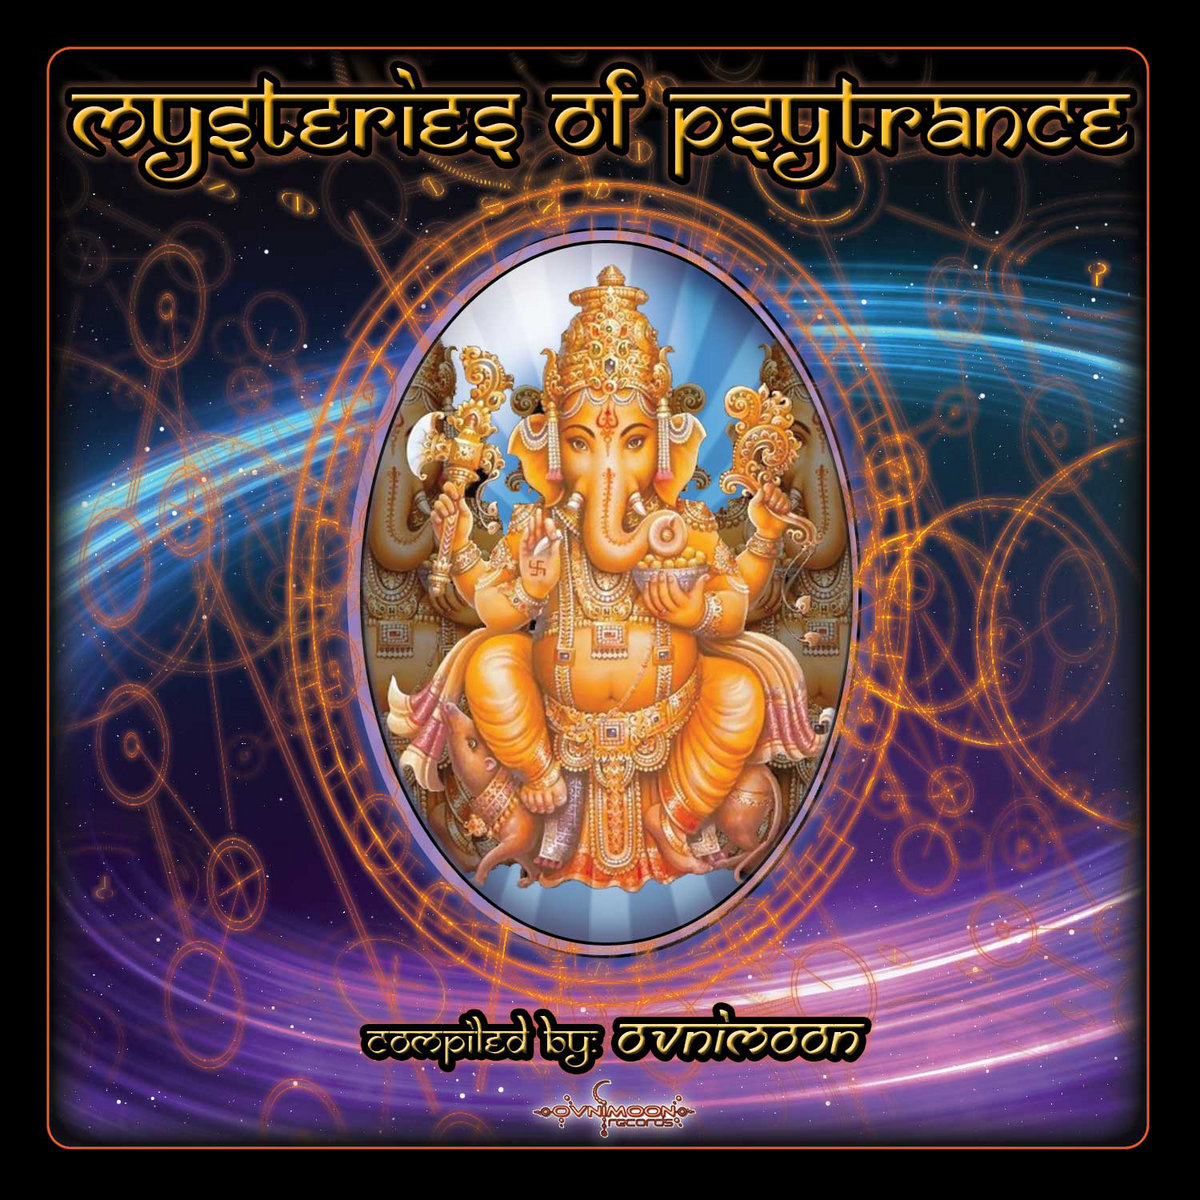 Mysteries of Psytrance Vol  1 - compiled by Ovnimoon